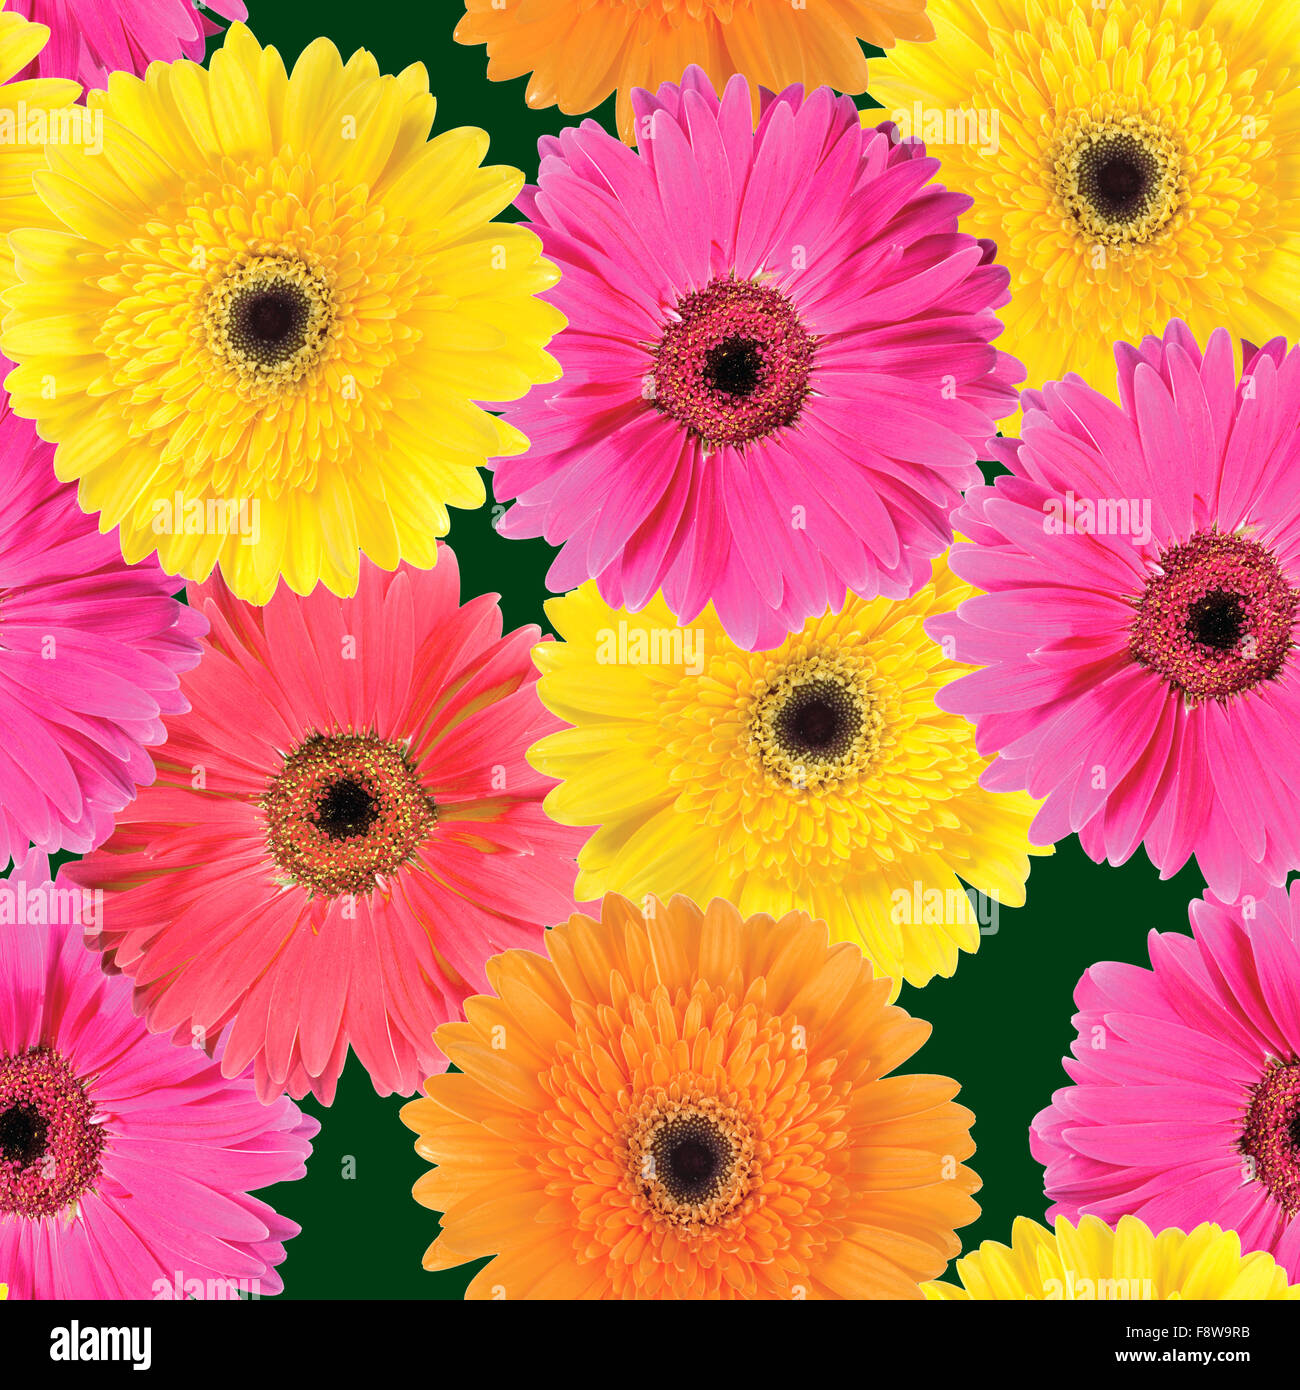 Background Of Pink Yellow And Orange Flowers Stock Photo 91525599